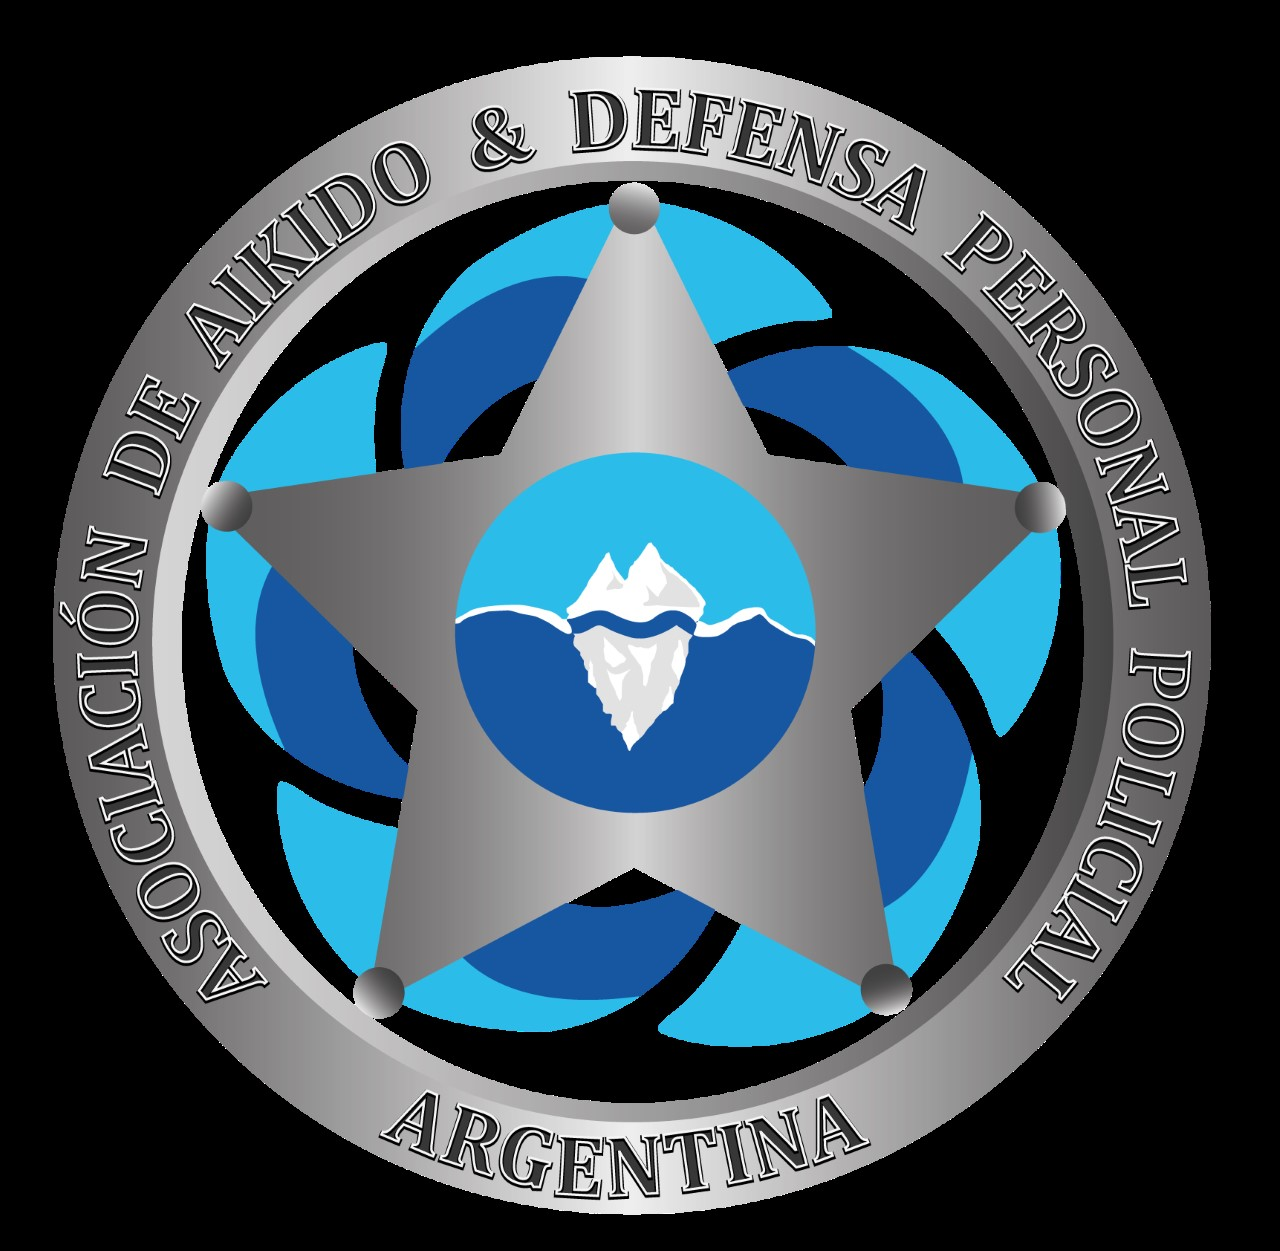 ASOC. AIKIDO & DEFENSA PERSONAL POLICIAL